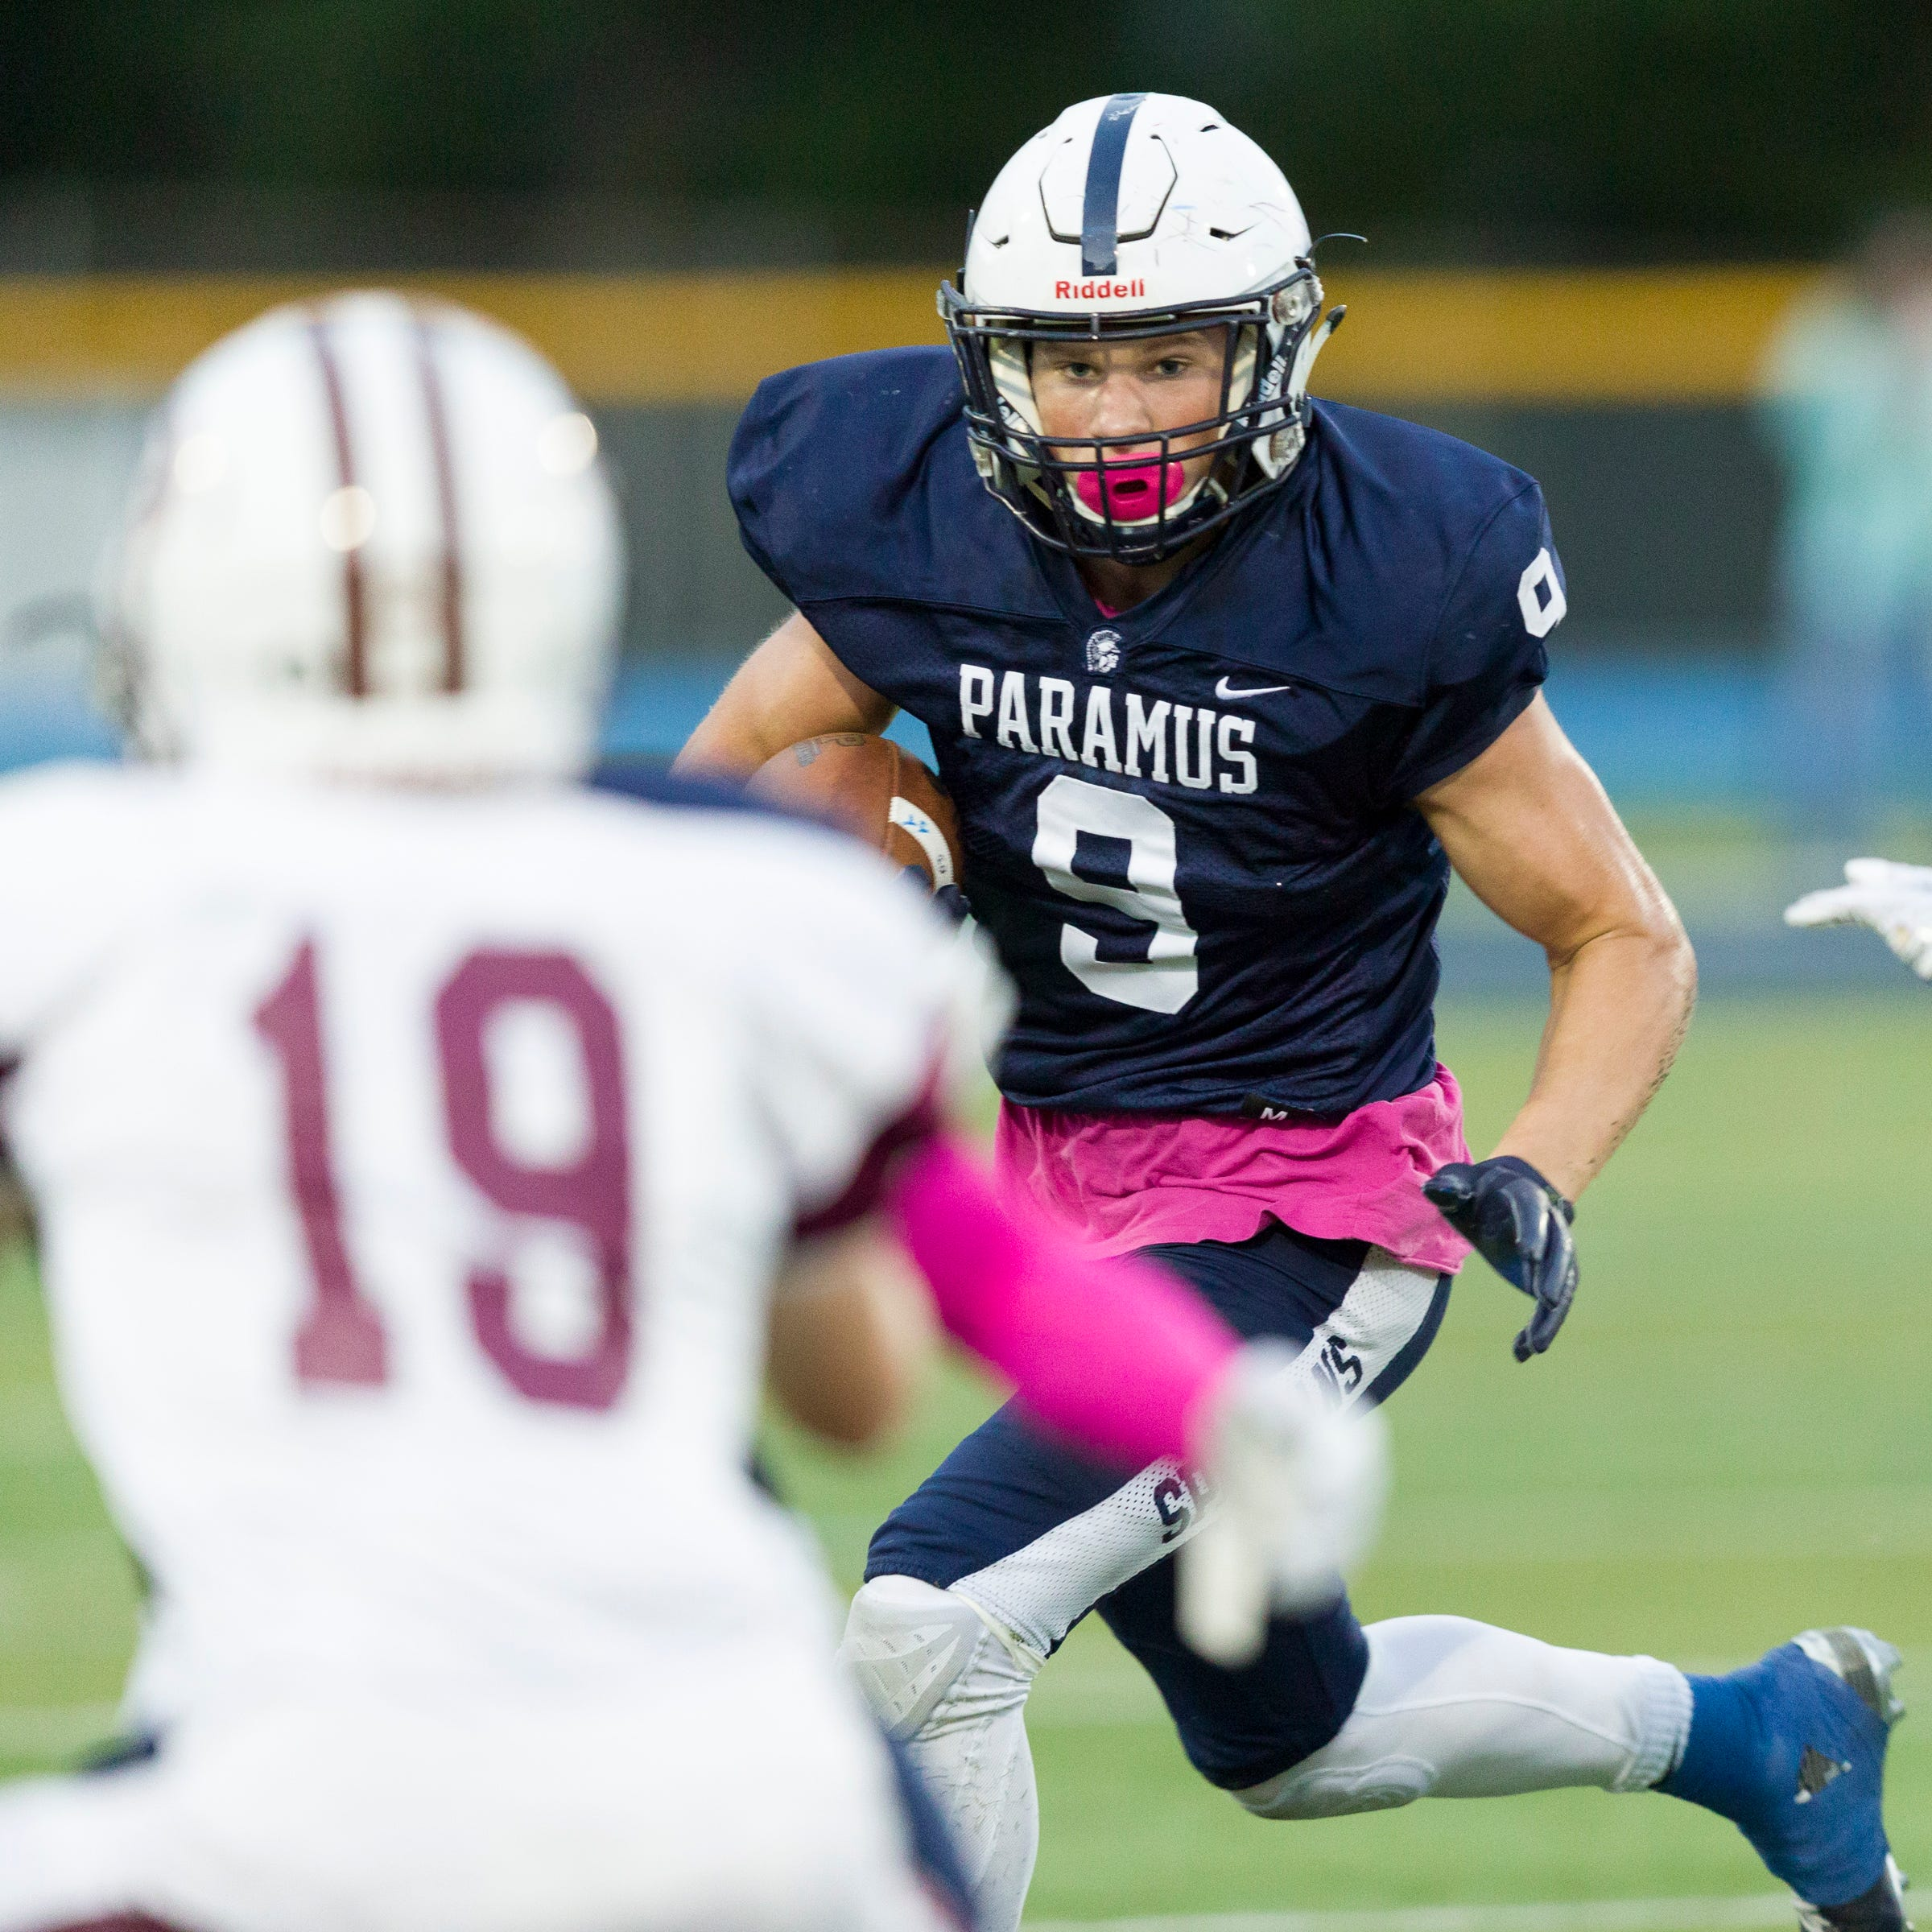 North Jersey football: Public Top 20 rankings after Week 7